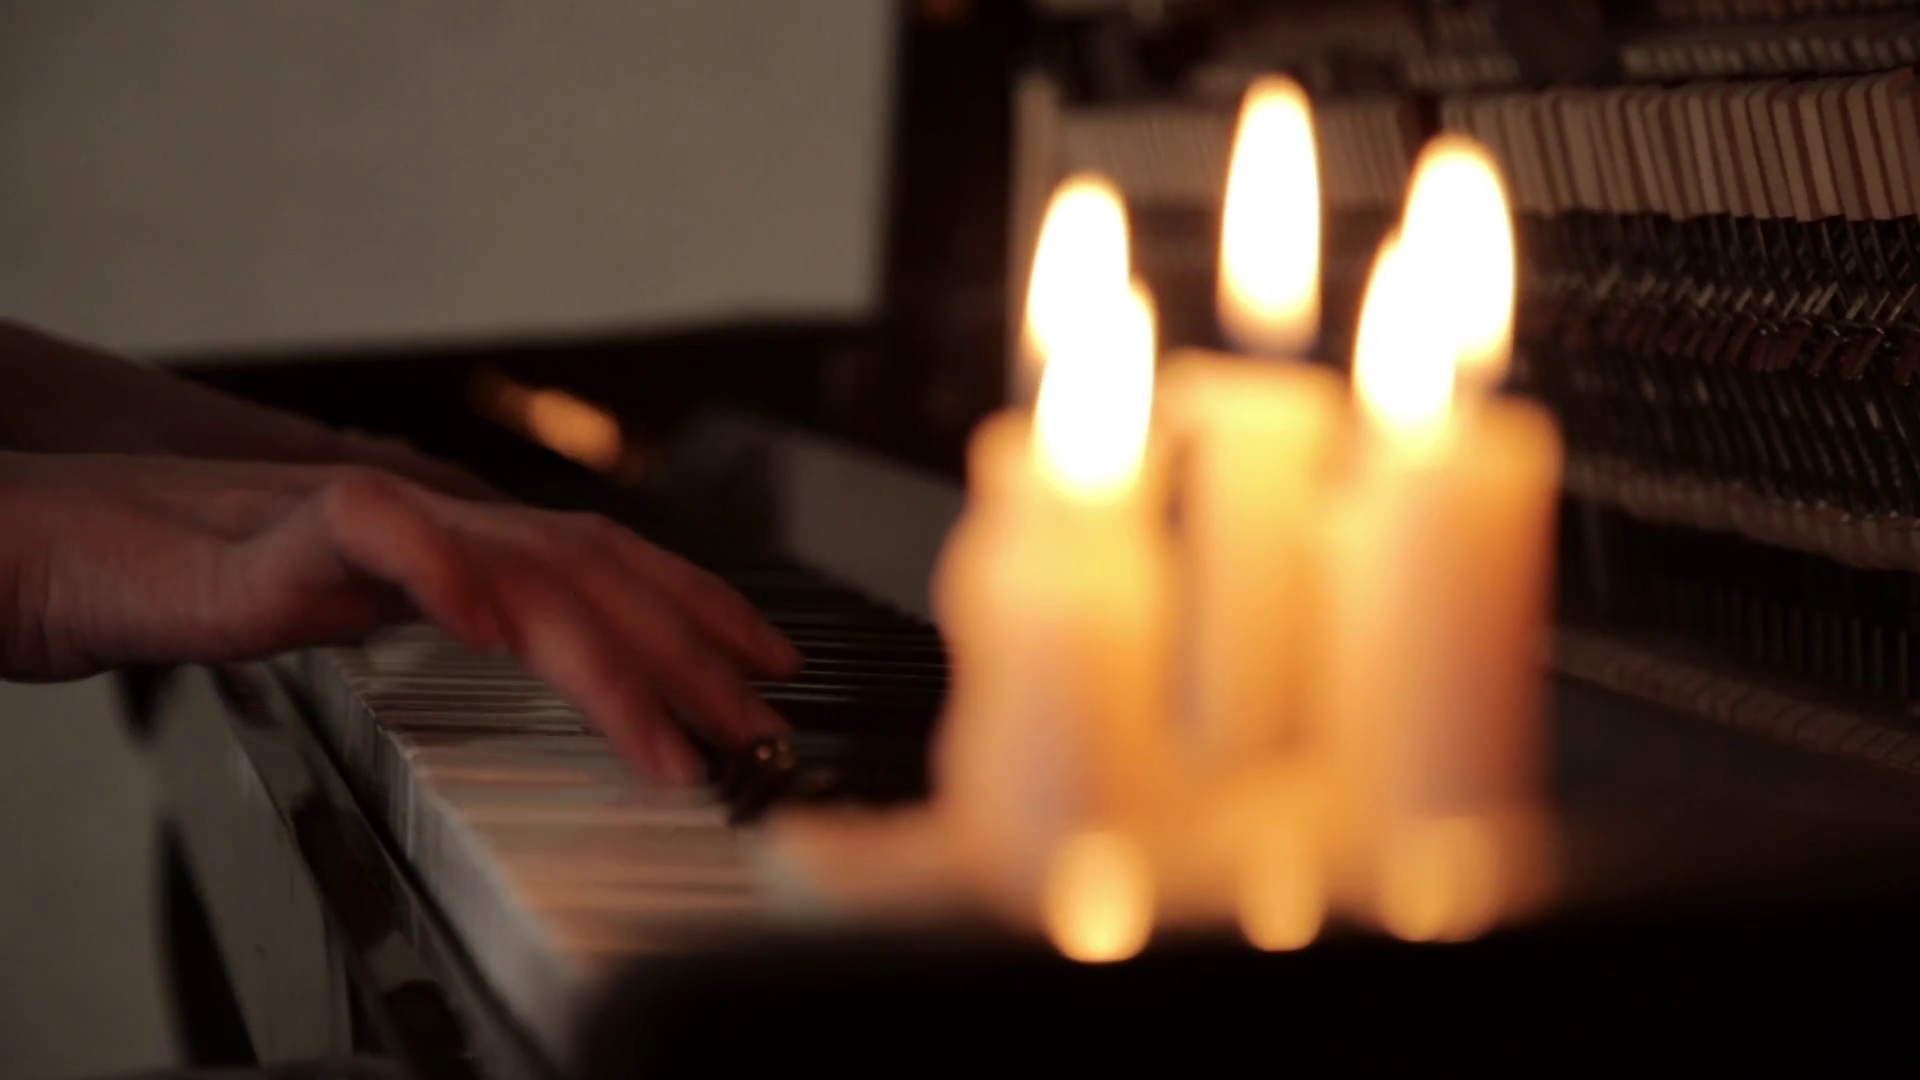 videoblocks-close-up-female-hands-playing-piano-on-a-dark-in-a-candles-light_hy6dg1ptx_thumbnail-full01.png